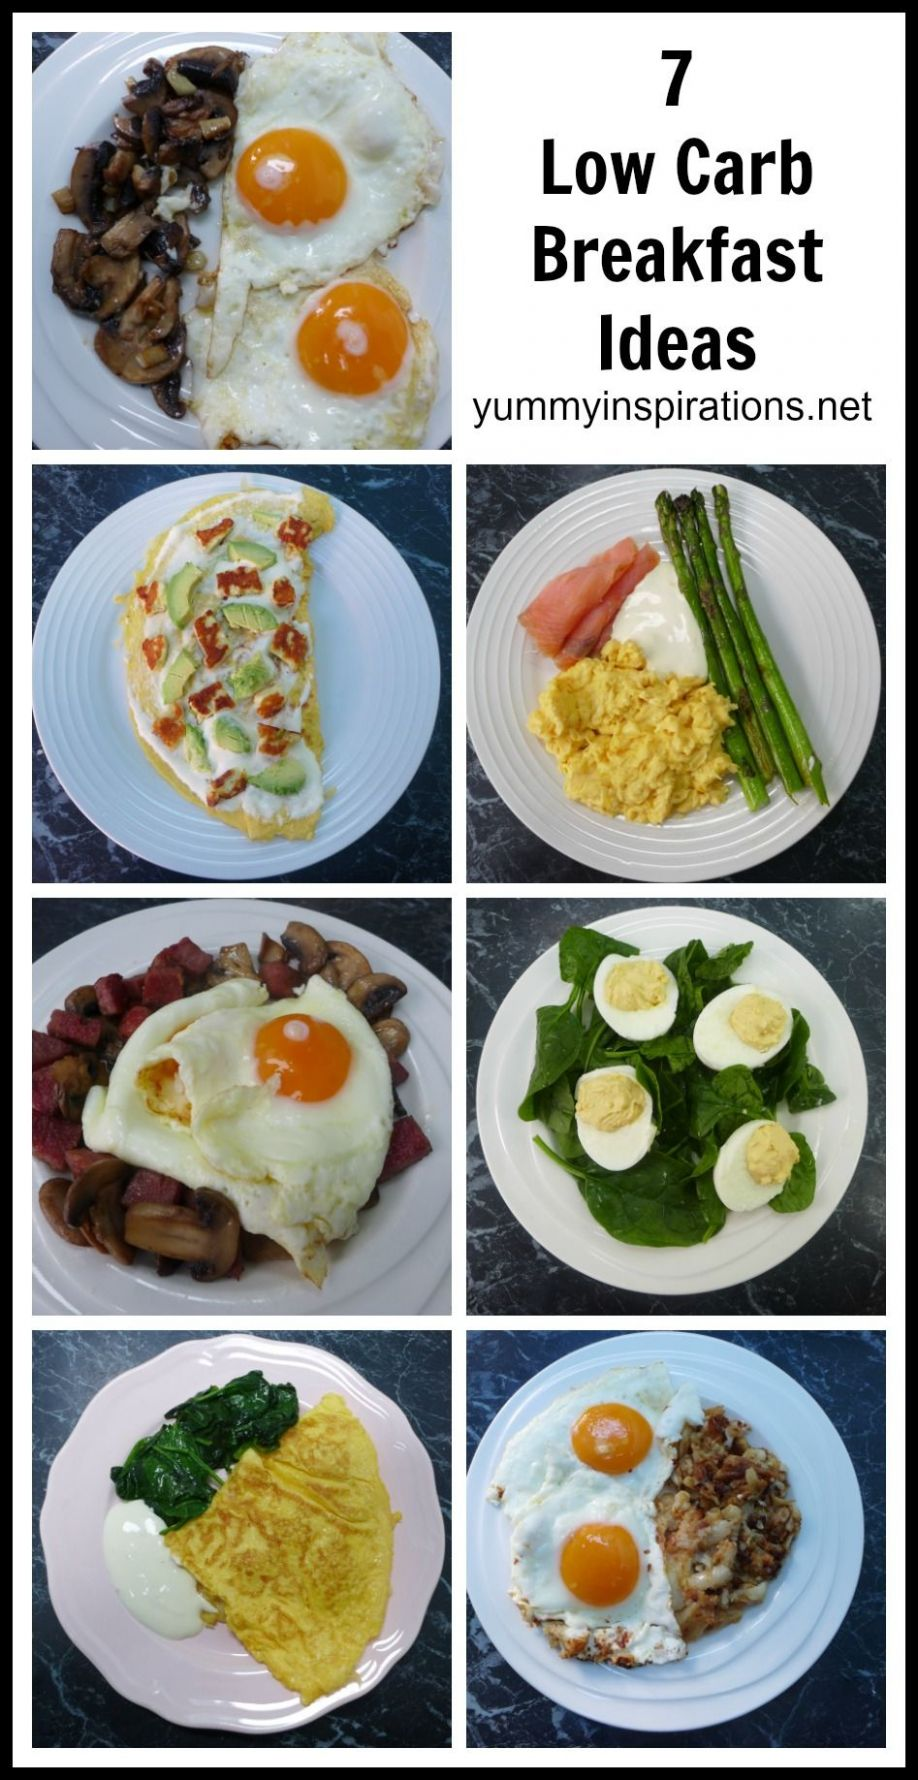 12 Low Carb Breakfast Ideas - A week of Keto Breakfast Recipes ..